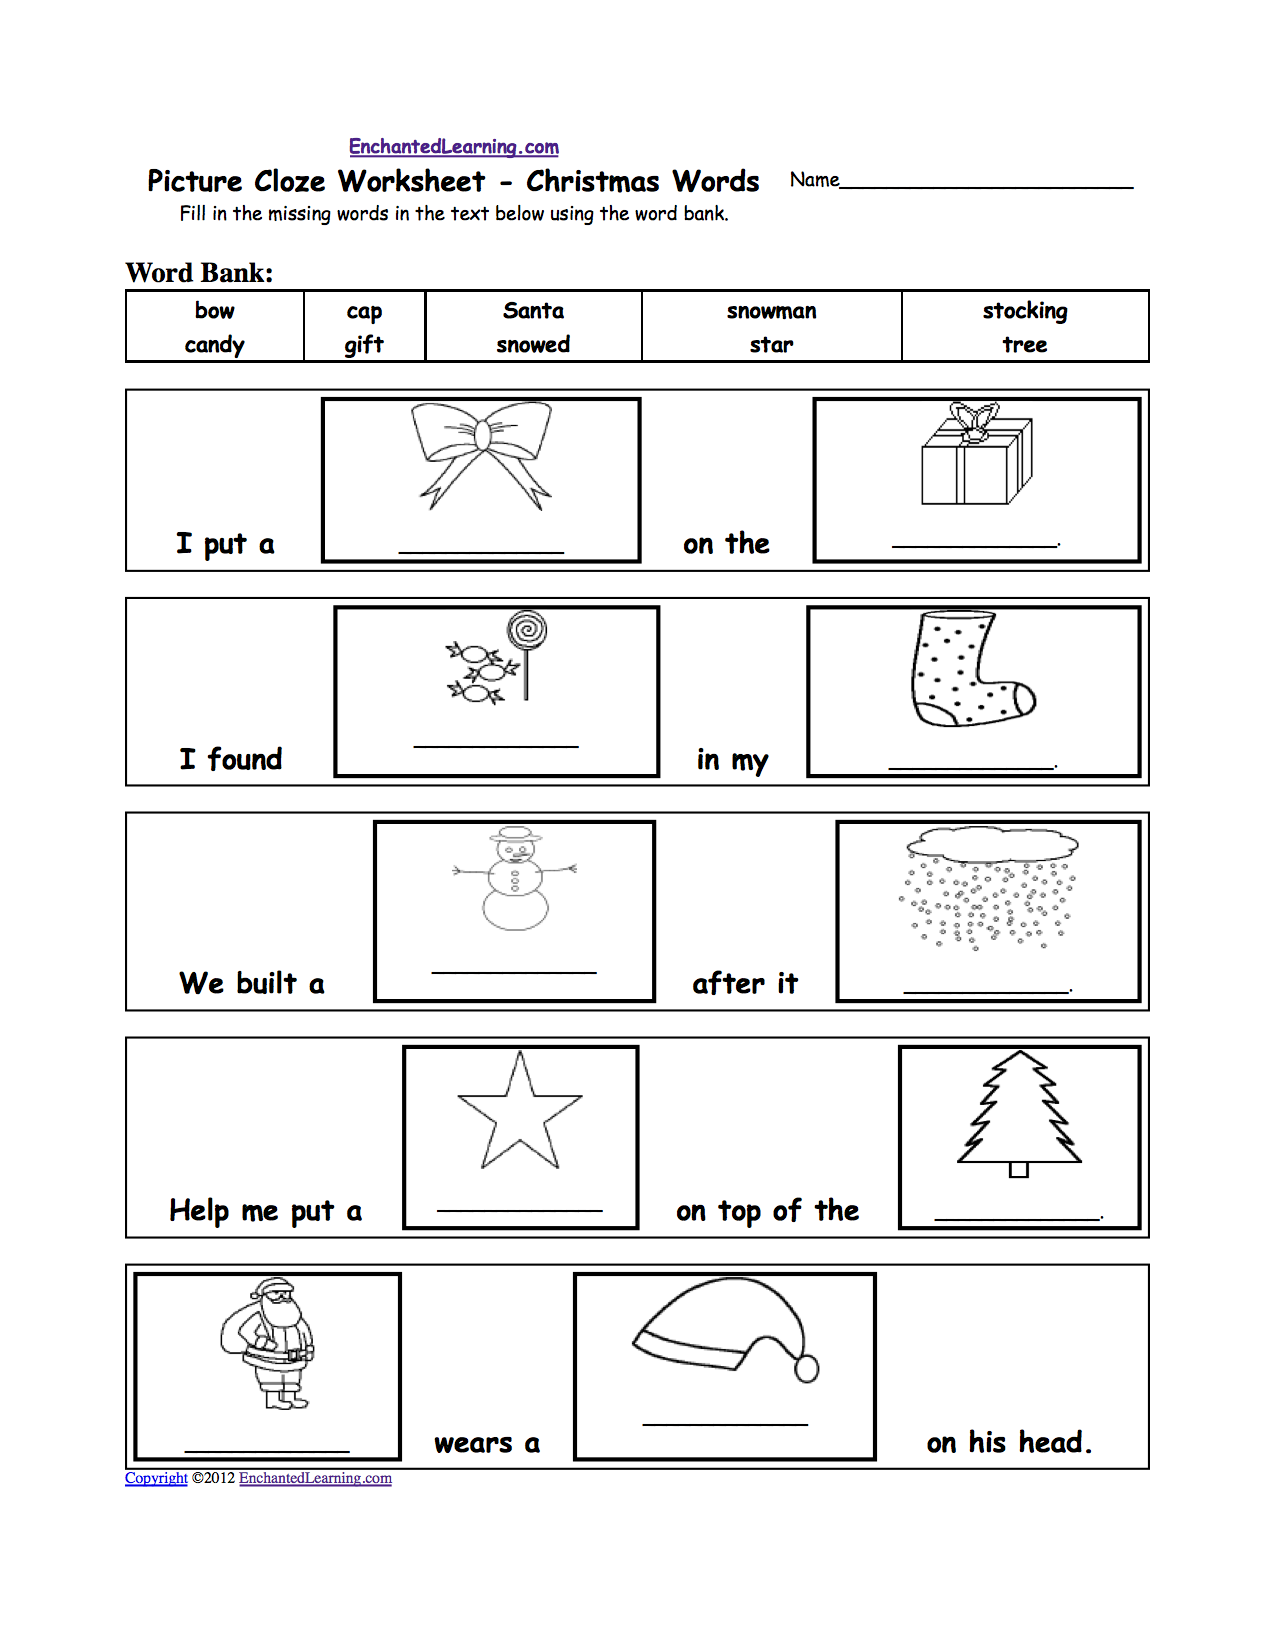 worksheet Christmas Worksheets For Kindergarten christmas crafts for kids enchantedlearning com or go to the answers cloze picture words printable worksheet